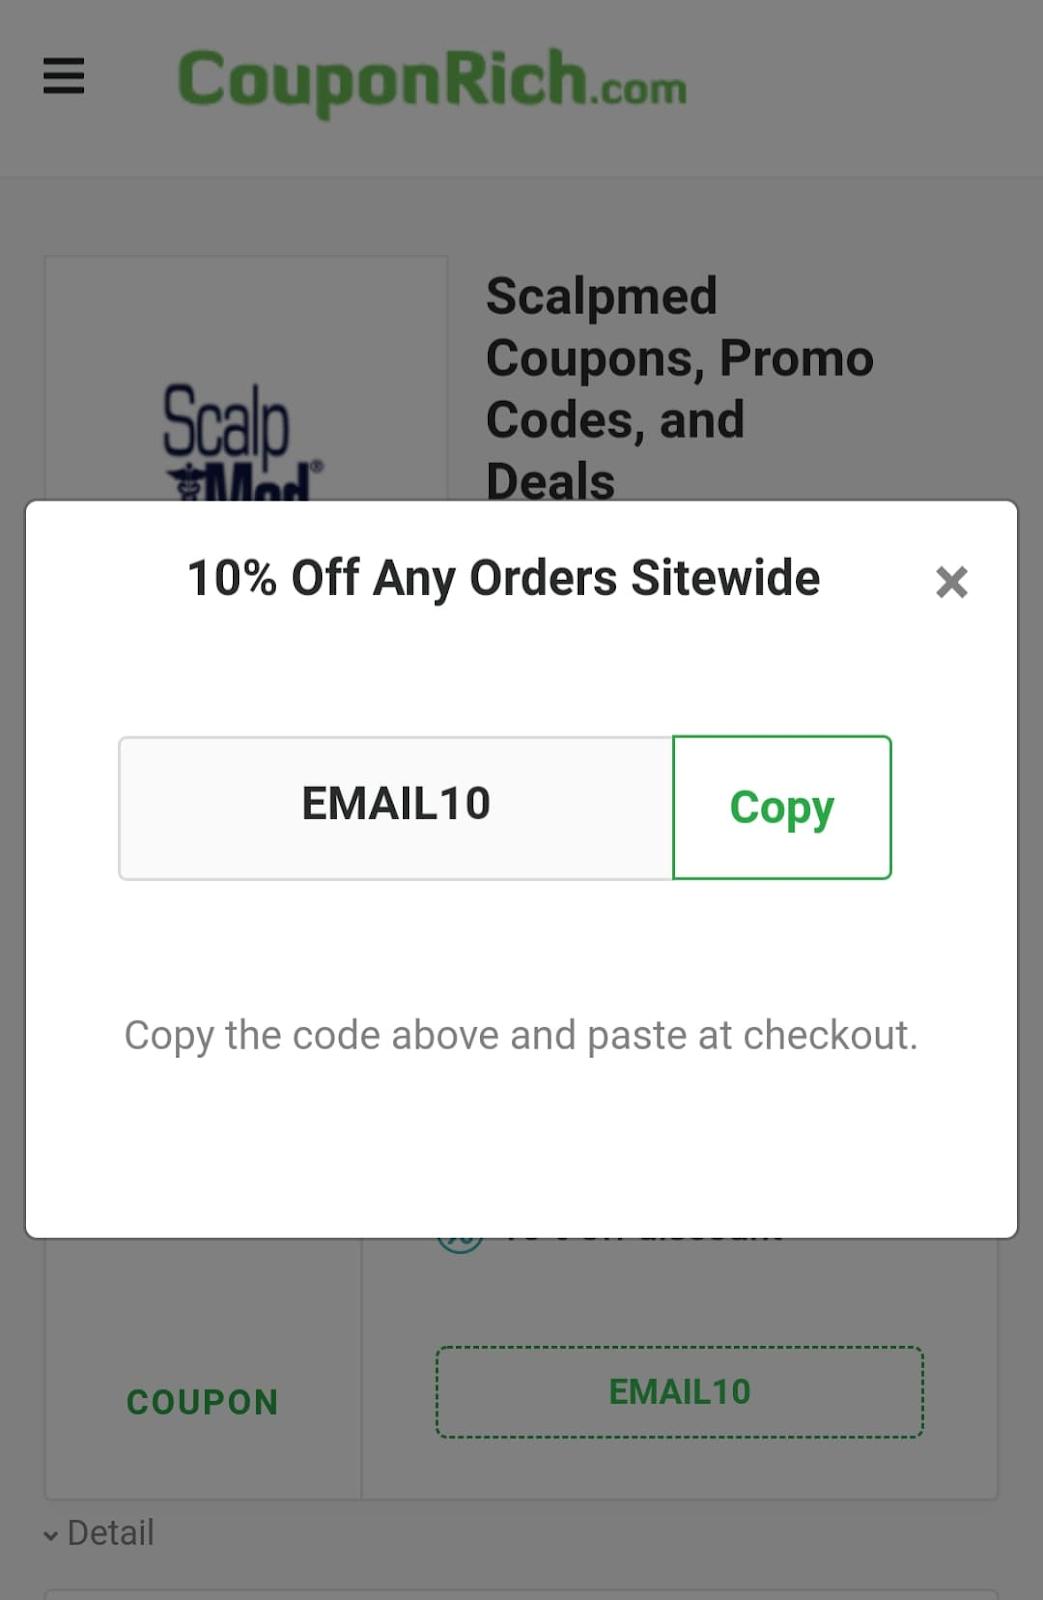 ScalpMed Coupon